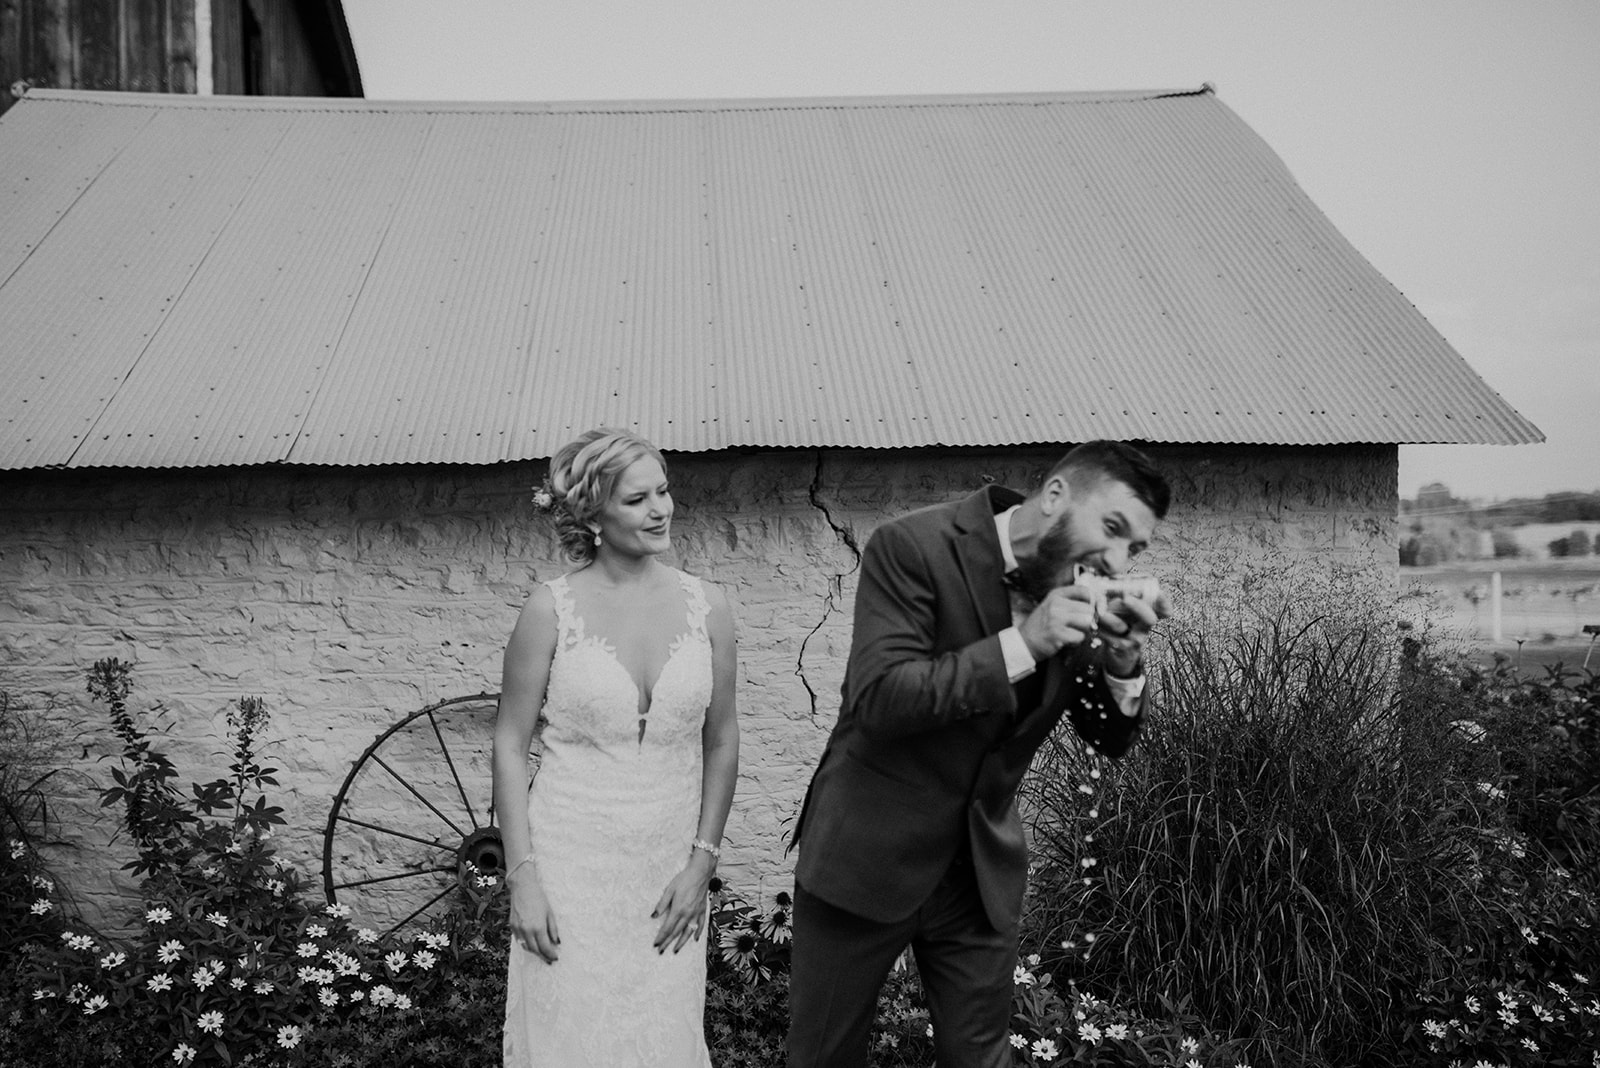 overthevineswisconsinwedding_1014.jpg